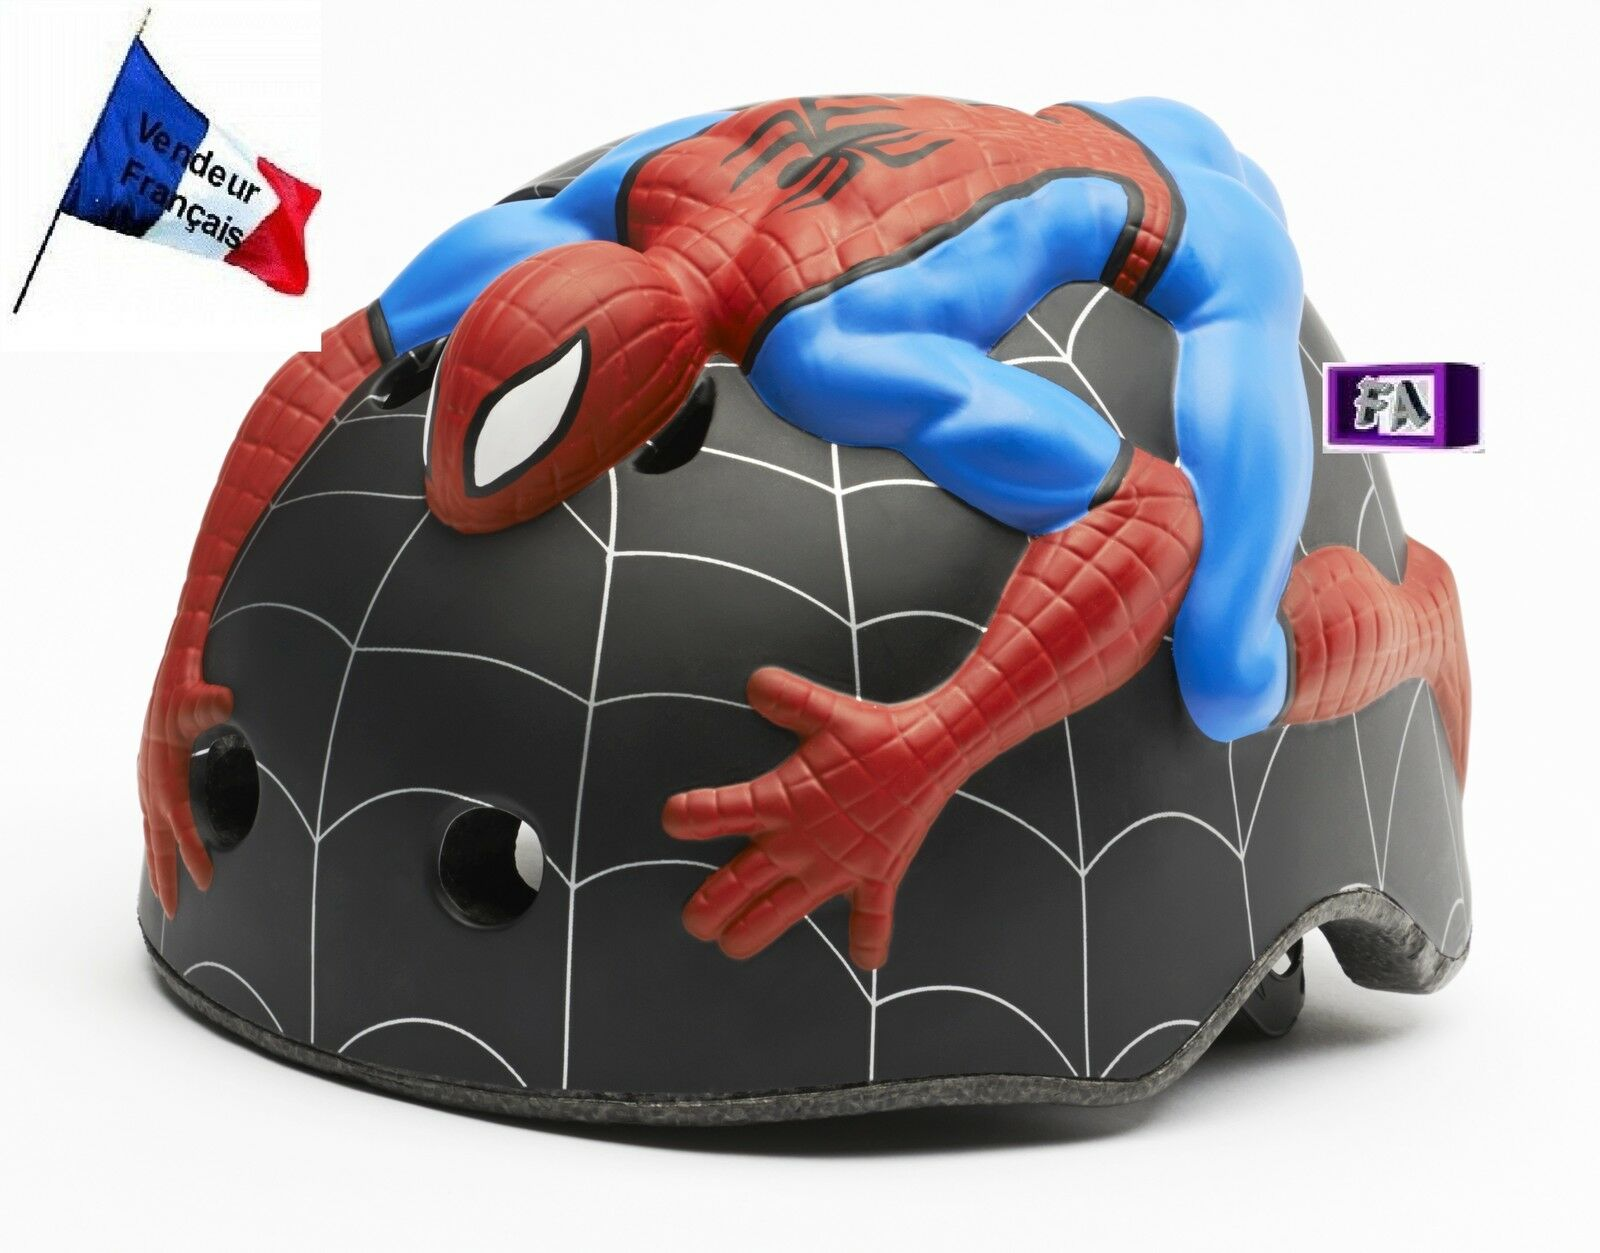 Casco ciclismo niño 1-3 año 3D Spiderman regulable CRAZY SAFETY amazing 46-51